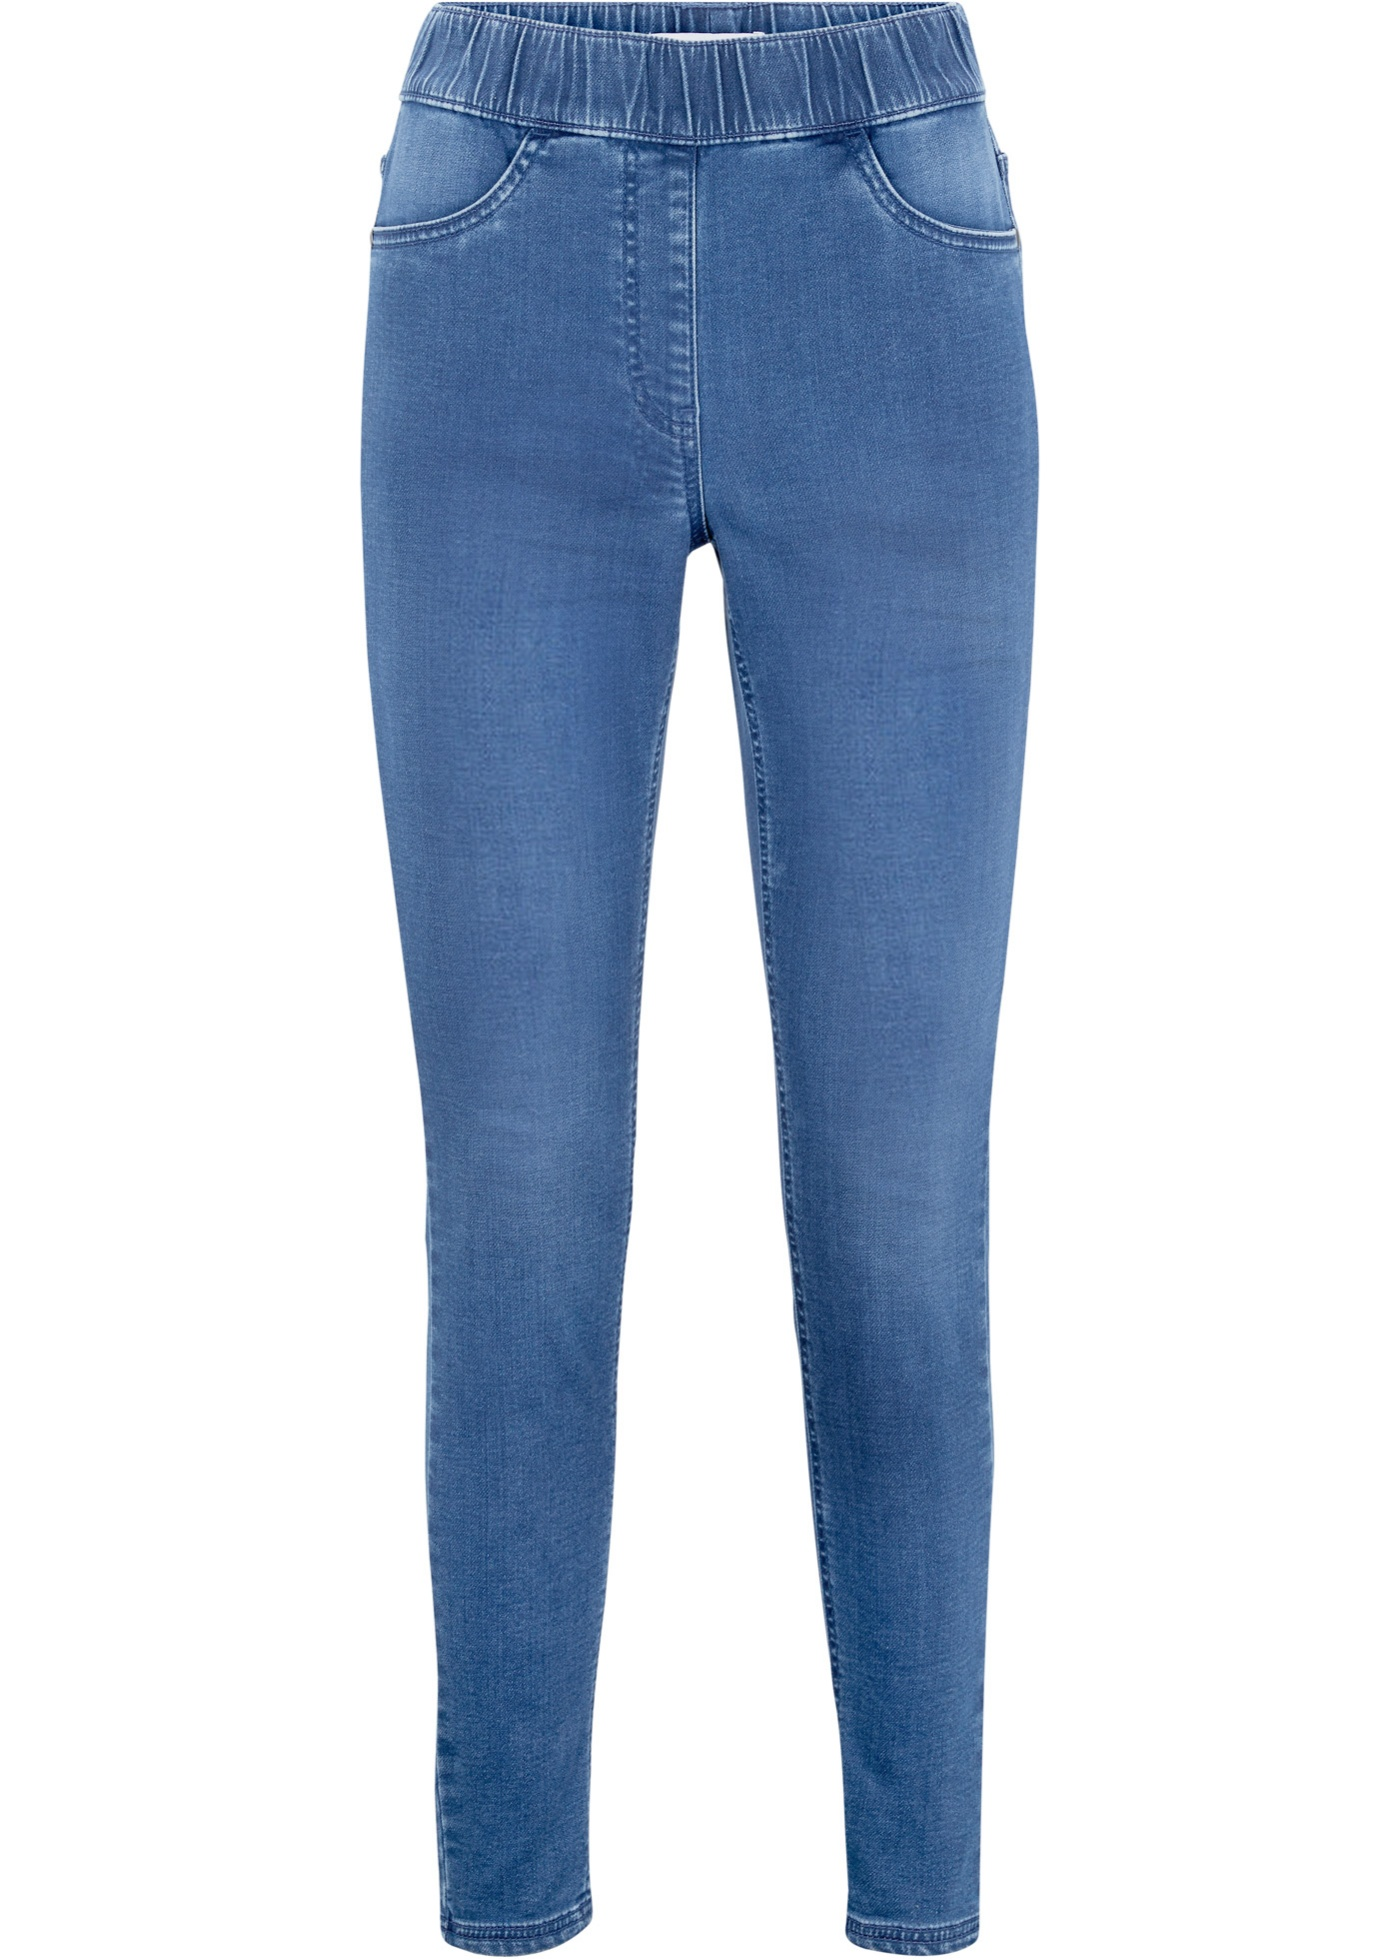 Maite Kelly Leggings in Jeansoptik in blau für Damen von bonprix